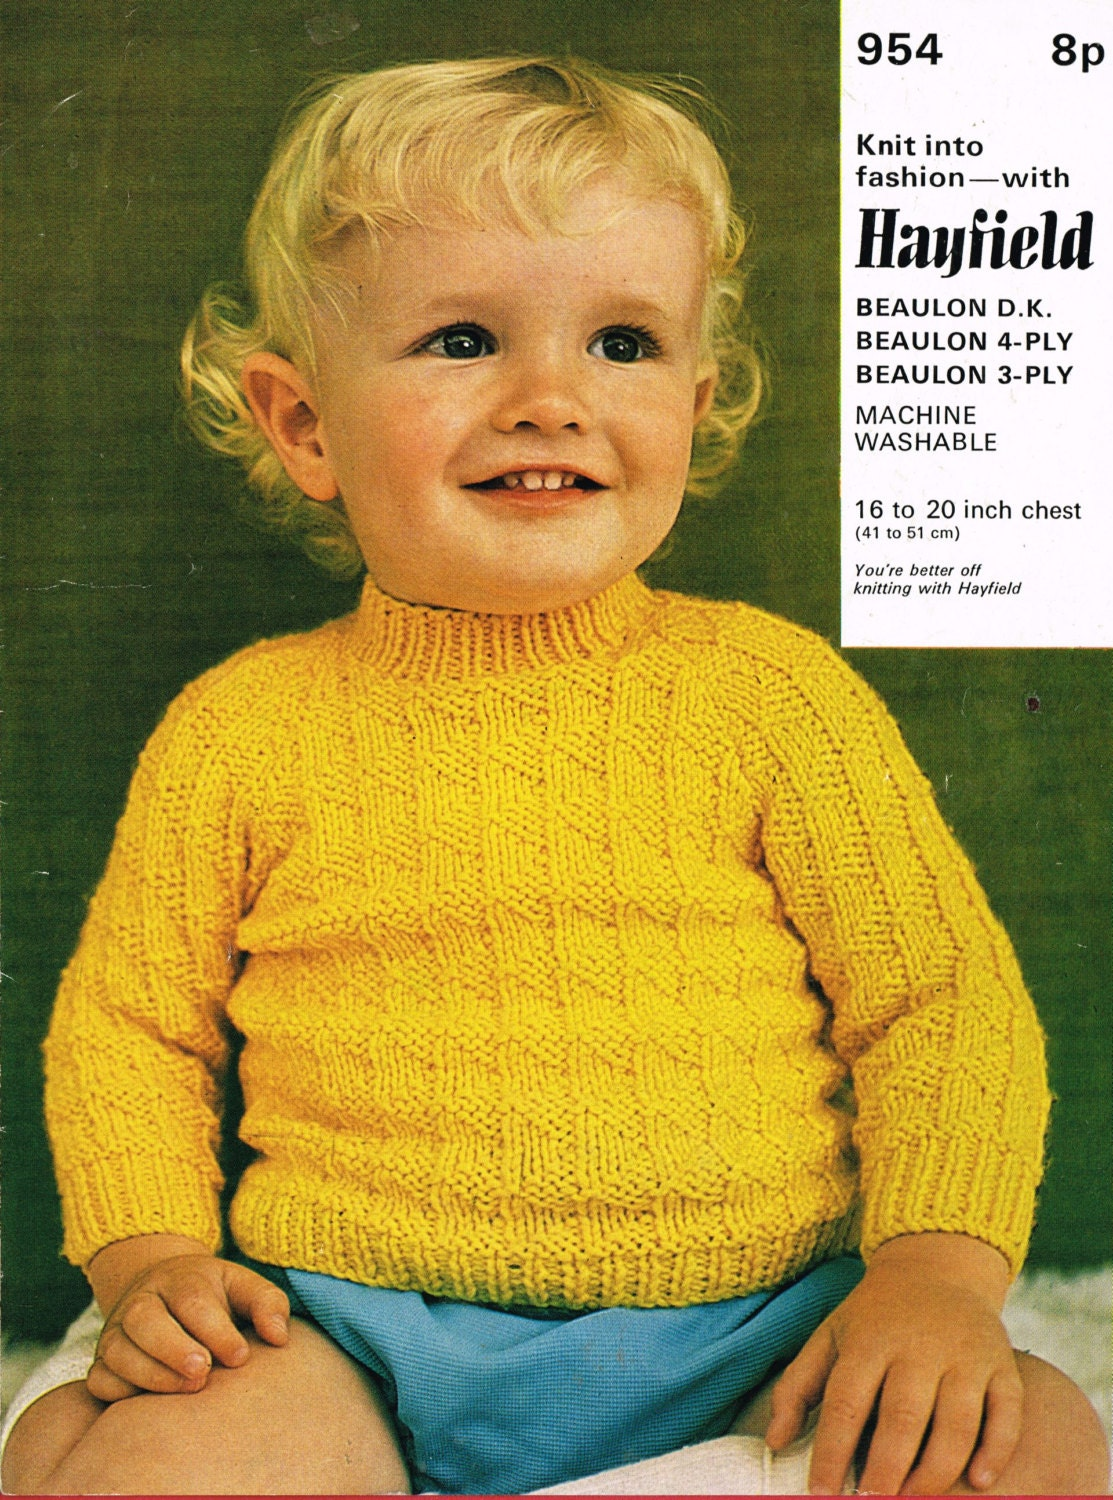 Hayfield Knitting Patterns For Babies : HAYFIELD 954 baby jumper vintage knitting pattern PDF instant